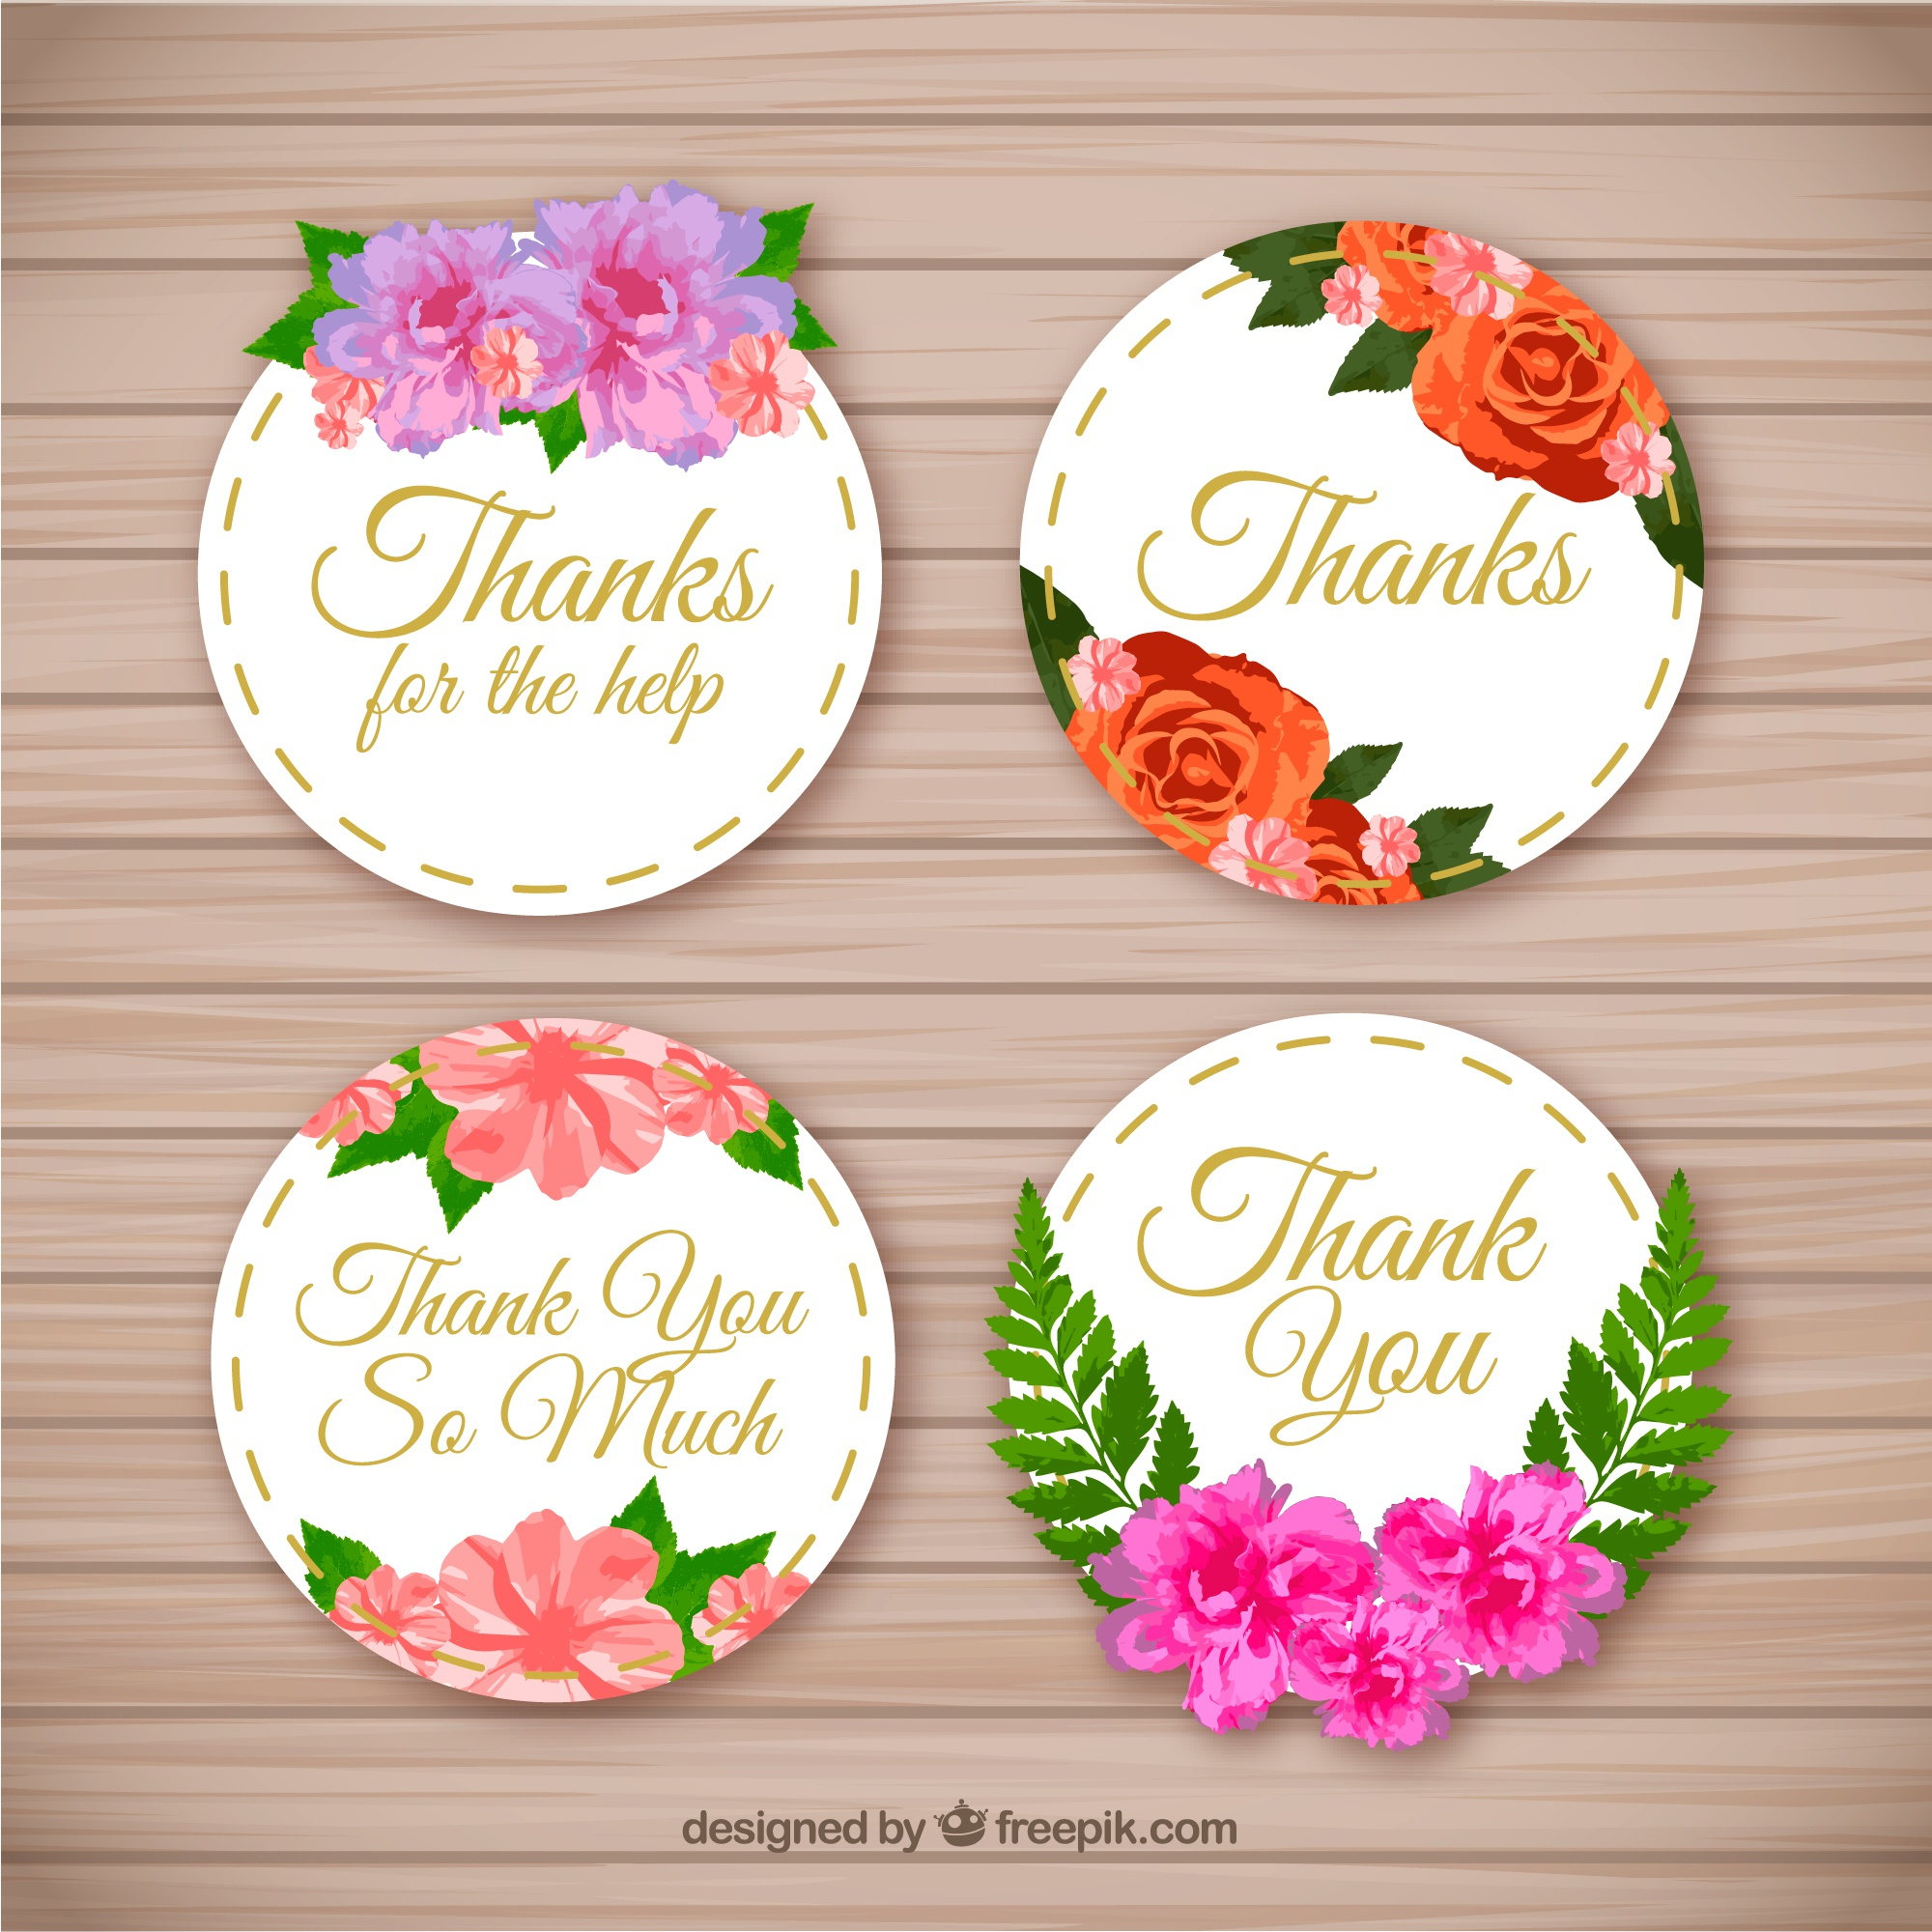 Pack of beautiful thank you stickers with flowers